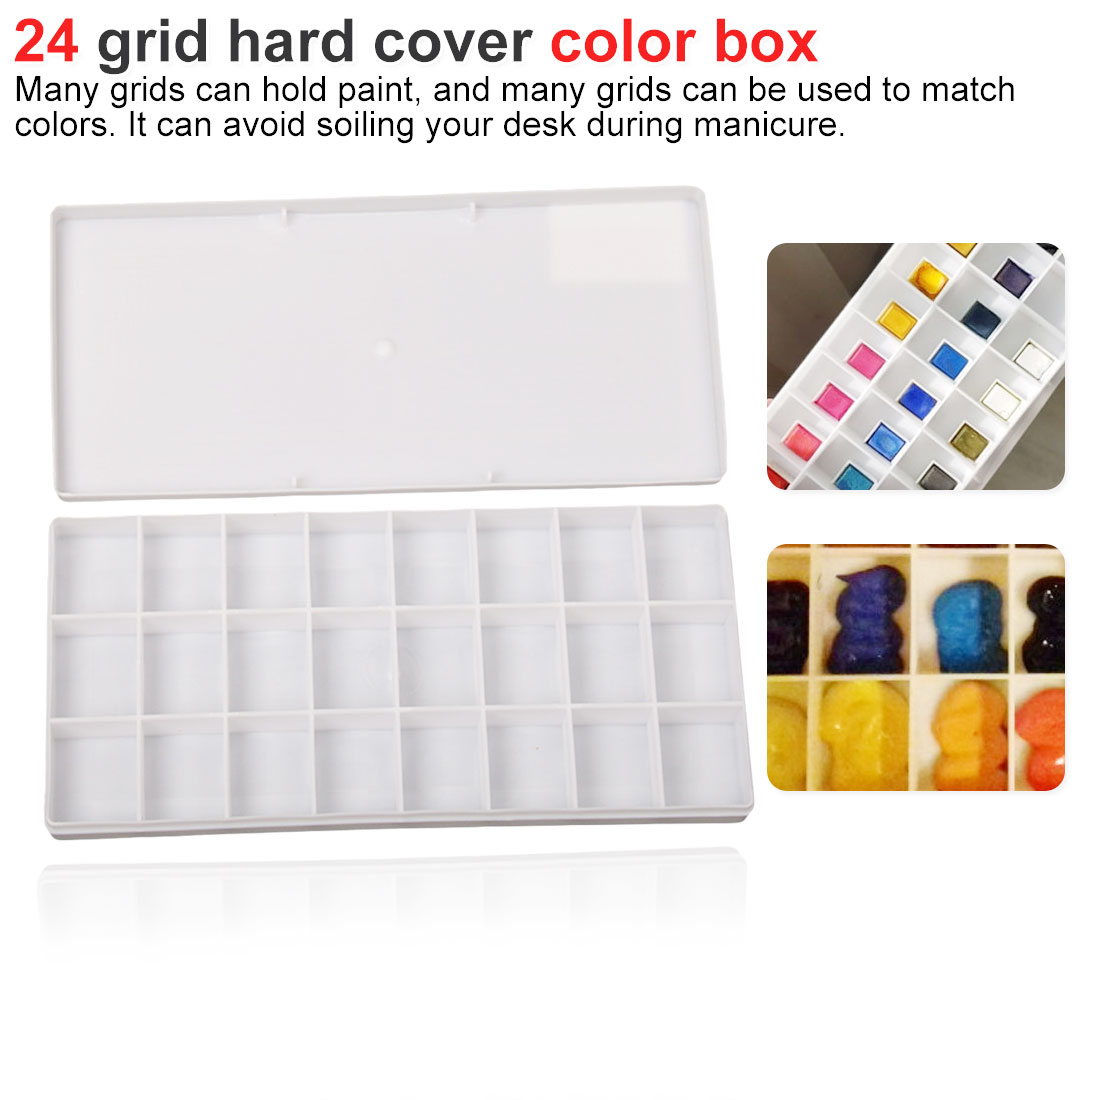 24 Grid Rectangle Palette Folding Painting Watercolor Art Tool Art Palette Flip Lid Paint Box